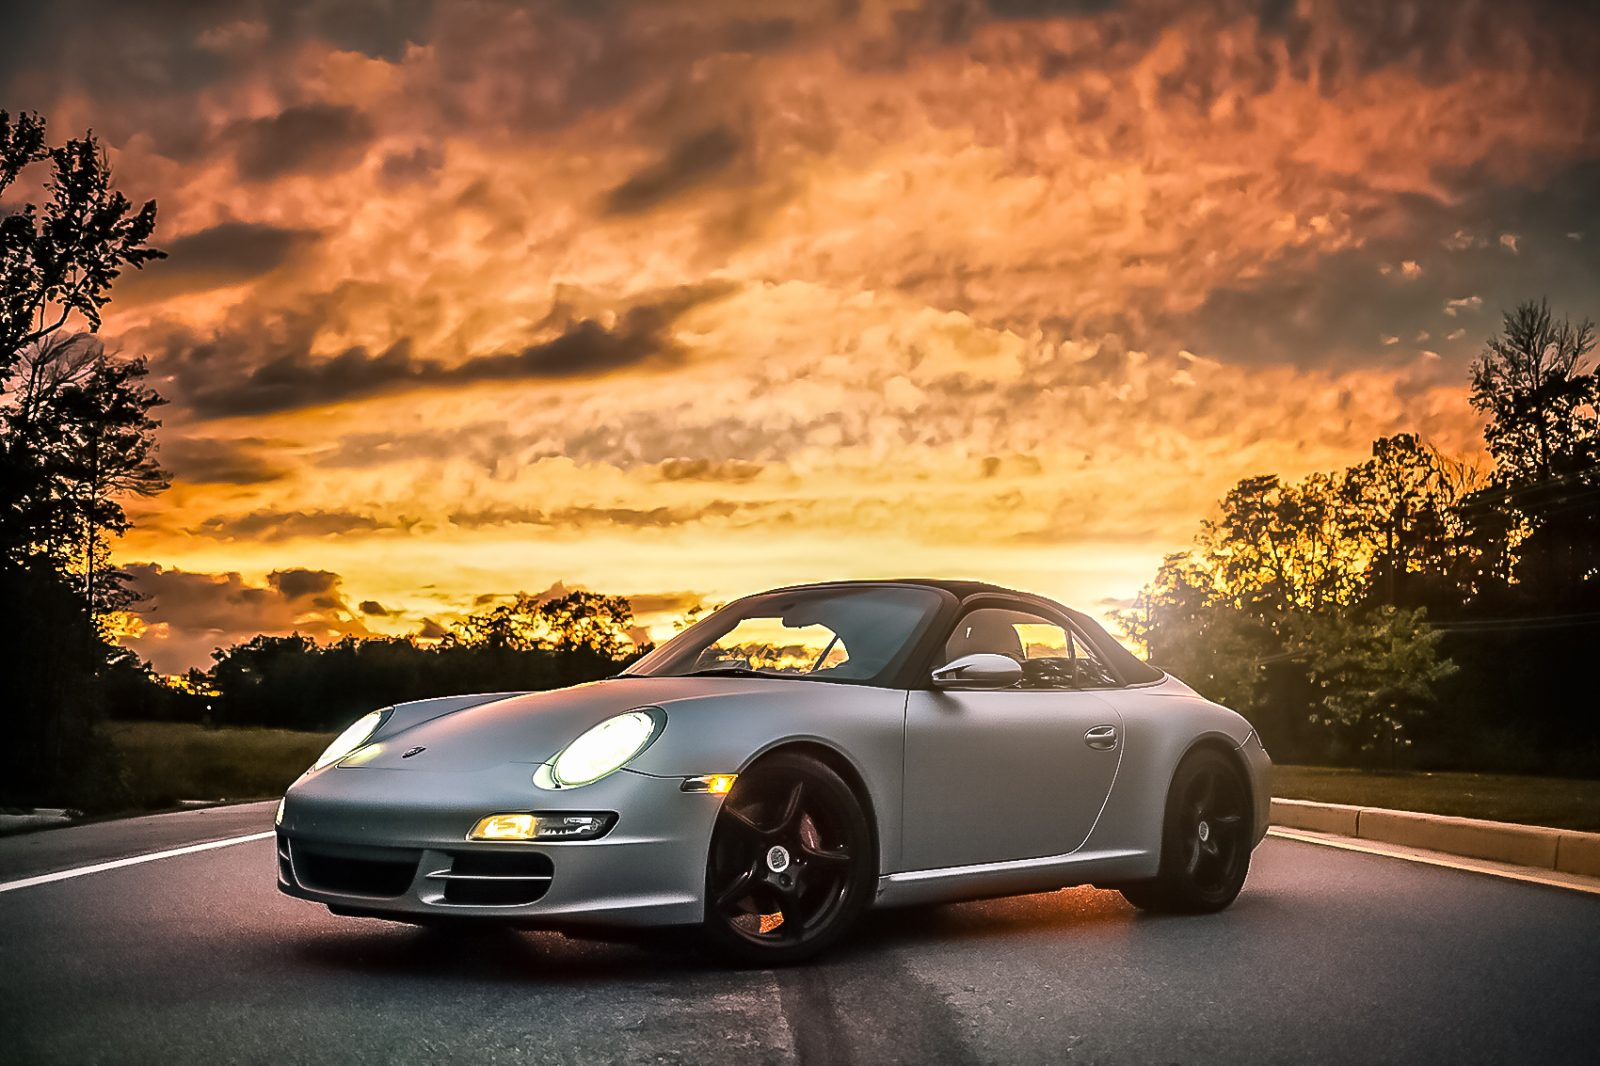 Porsche Sunset1 Edit